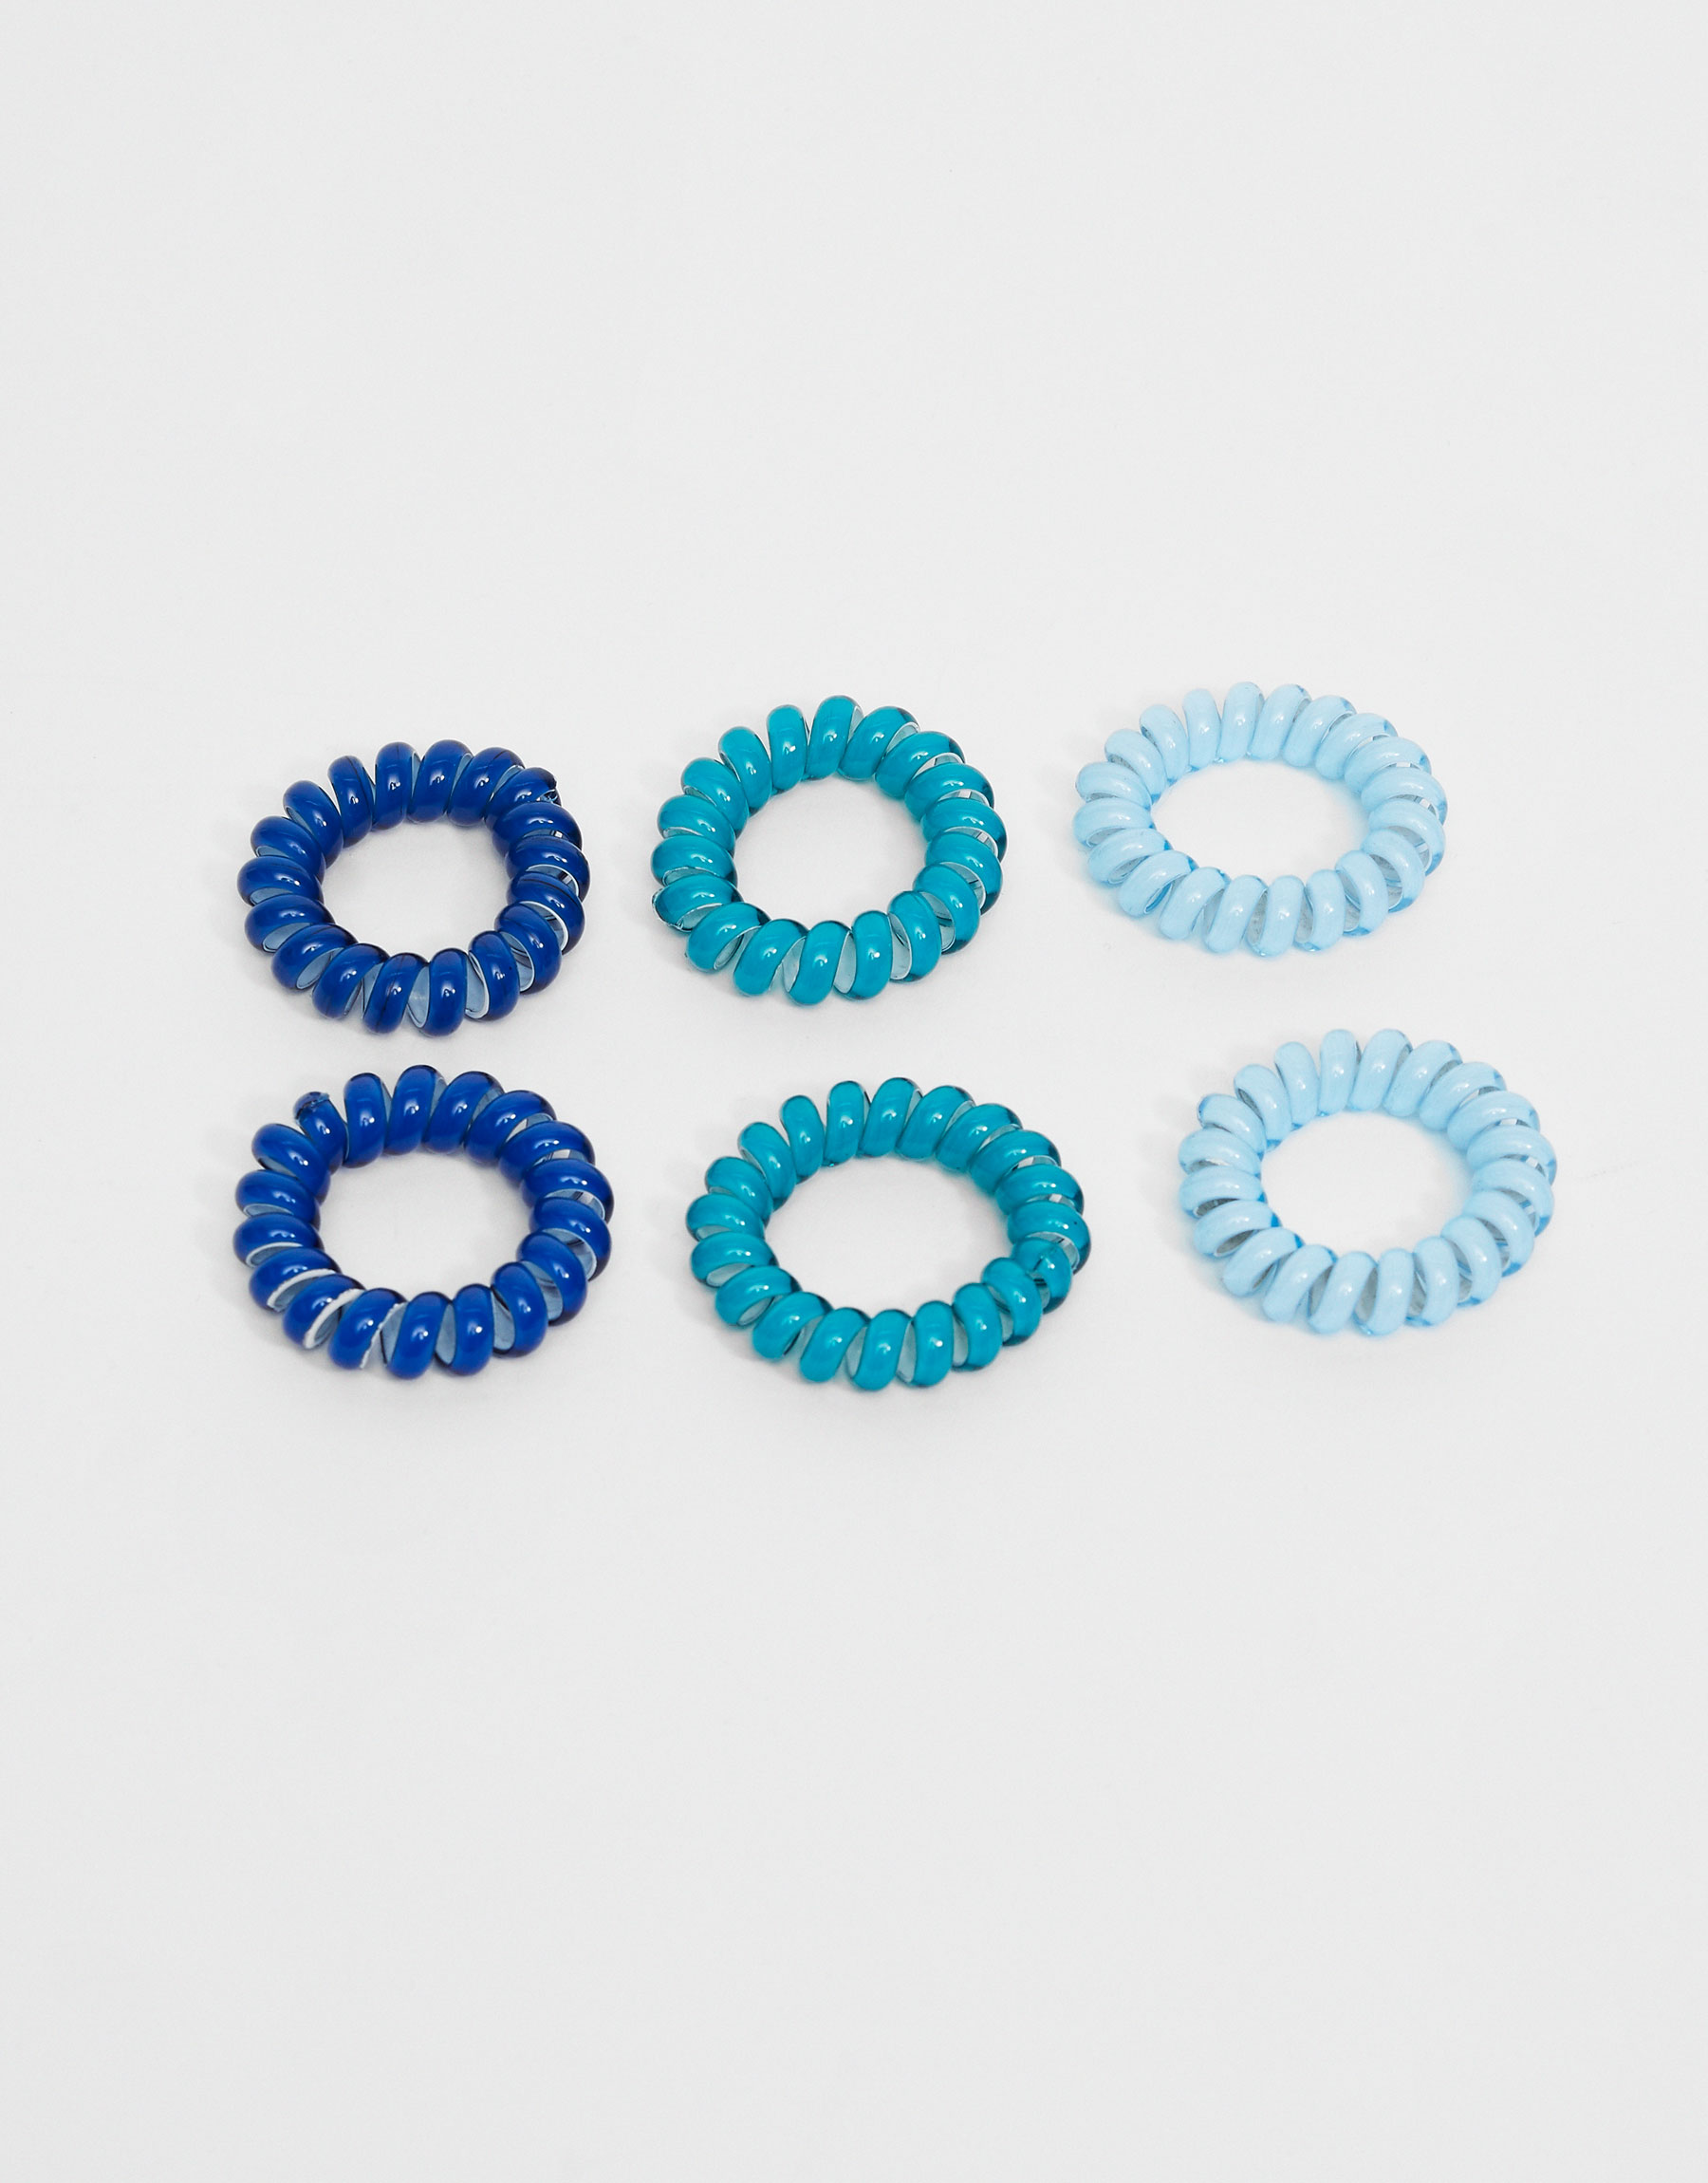 6-Pack of blue hair ties